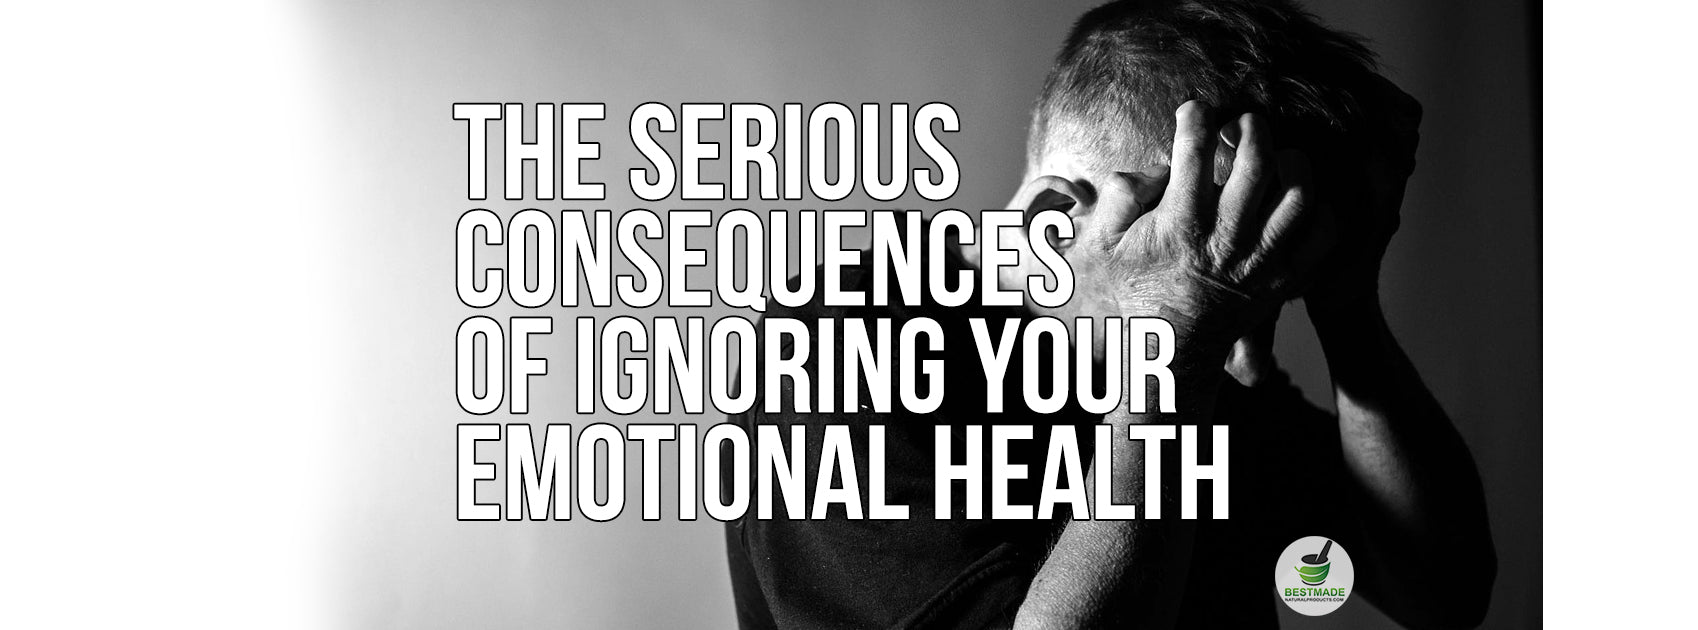 The Serious Consequences of Ignoring Your Emotional Health